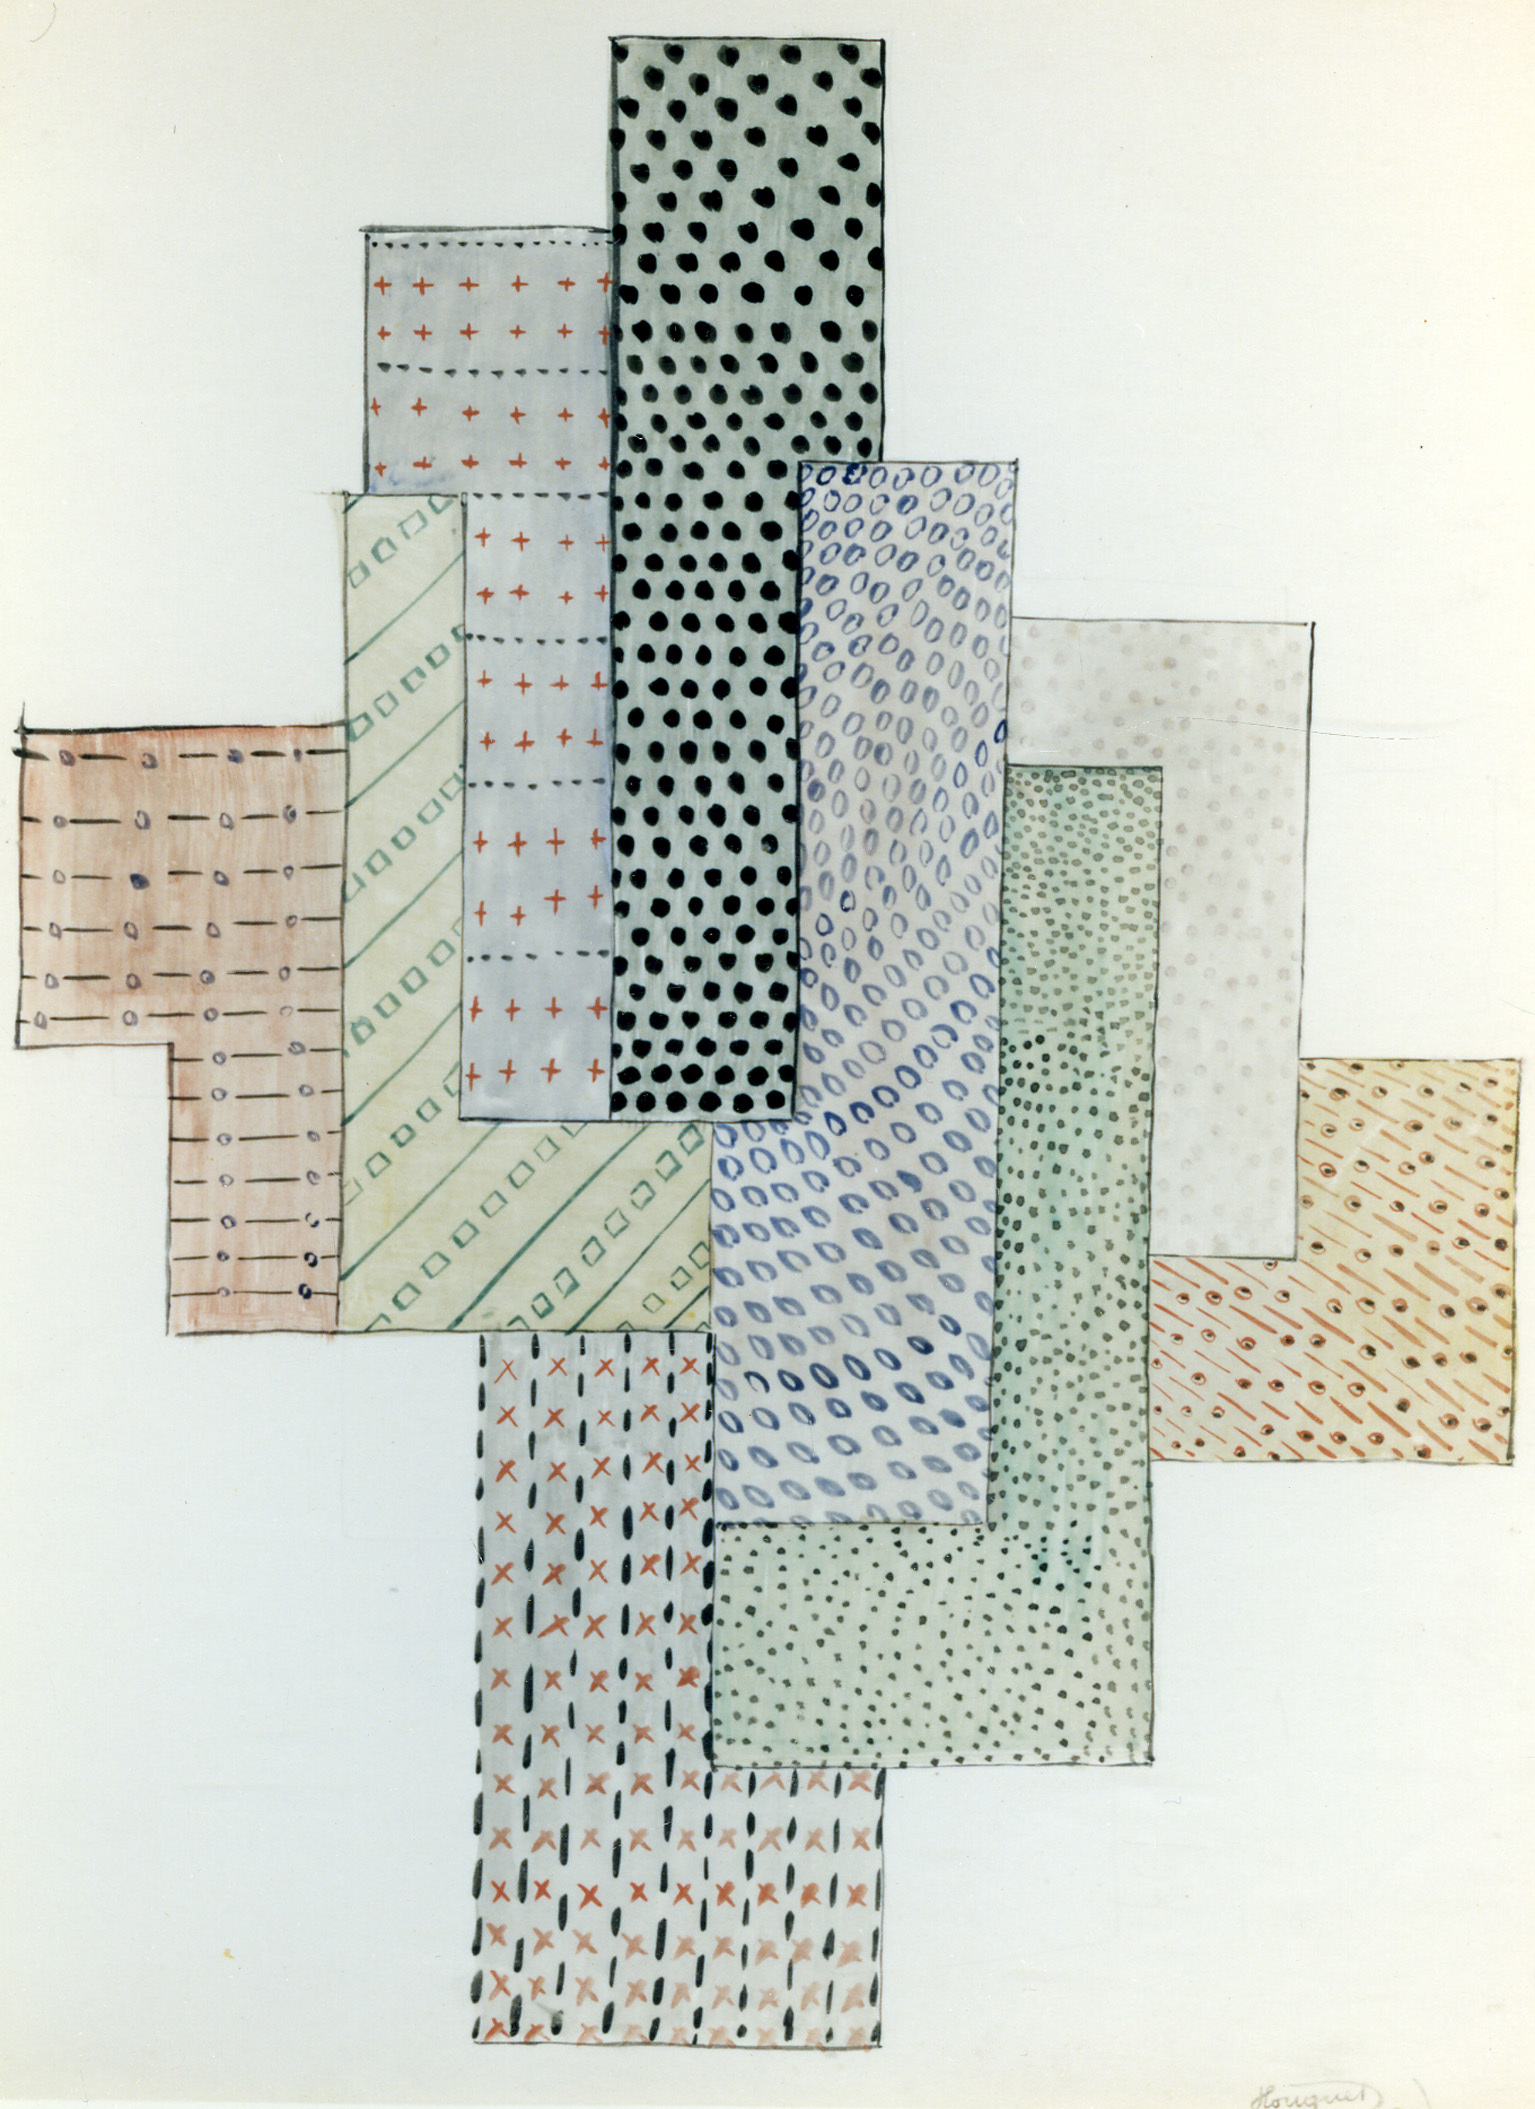 P.-L. Flouquet, Construction, watercolor, pencil, ink on paper, 1921. / © KIK-IRPA, Brussels (Belgium), cliché KM2803.